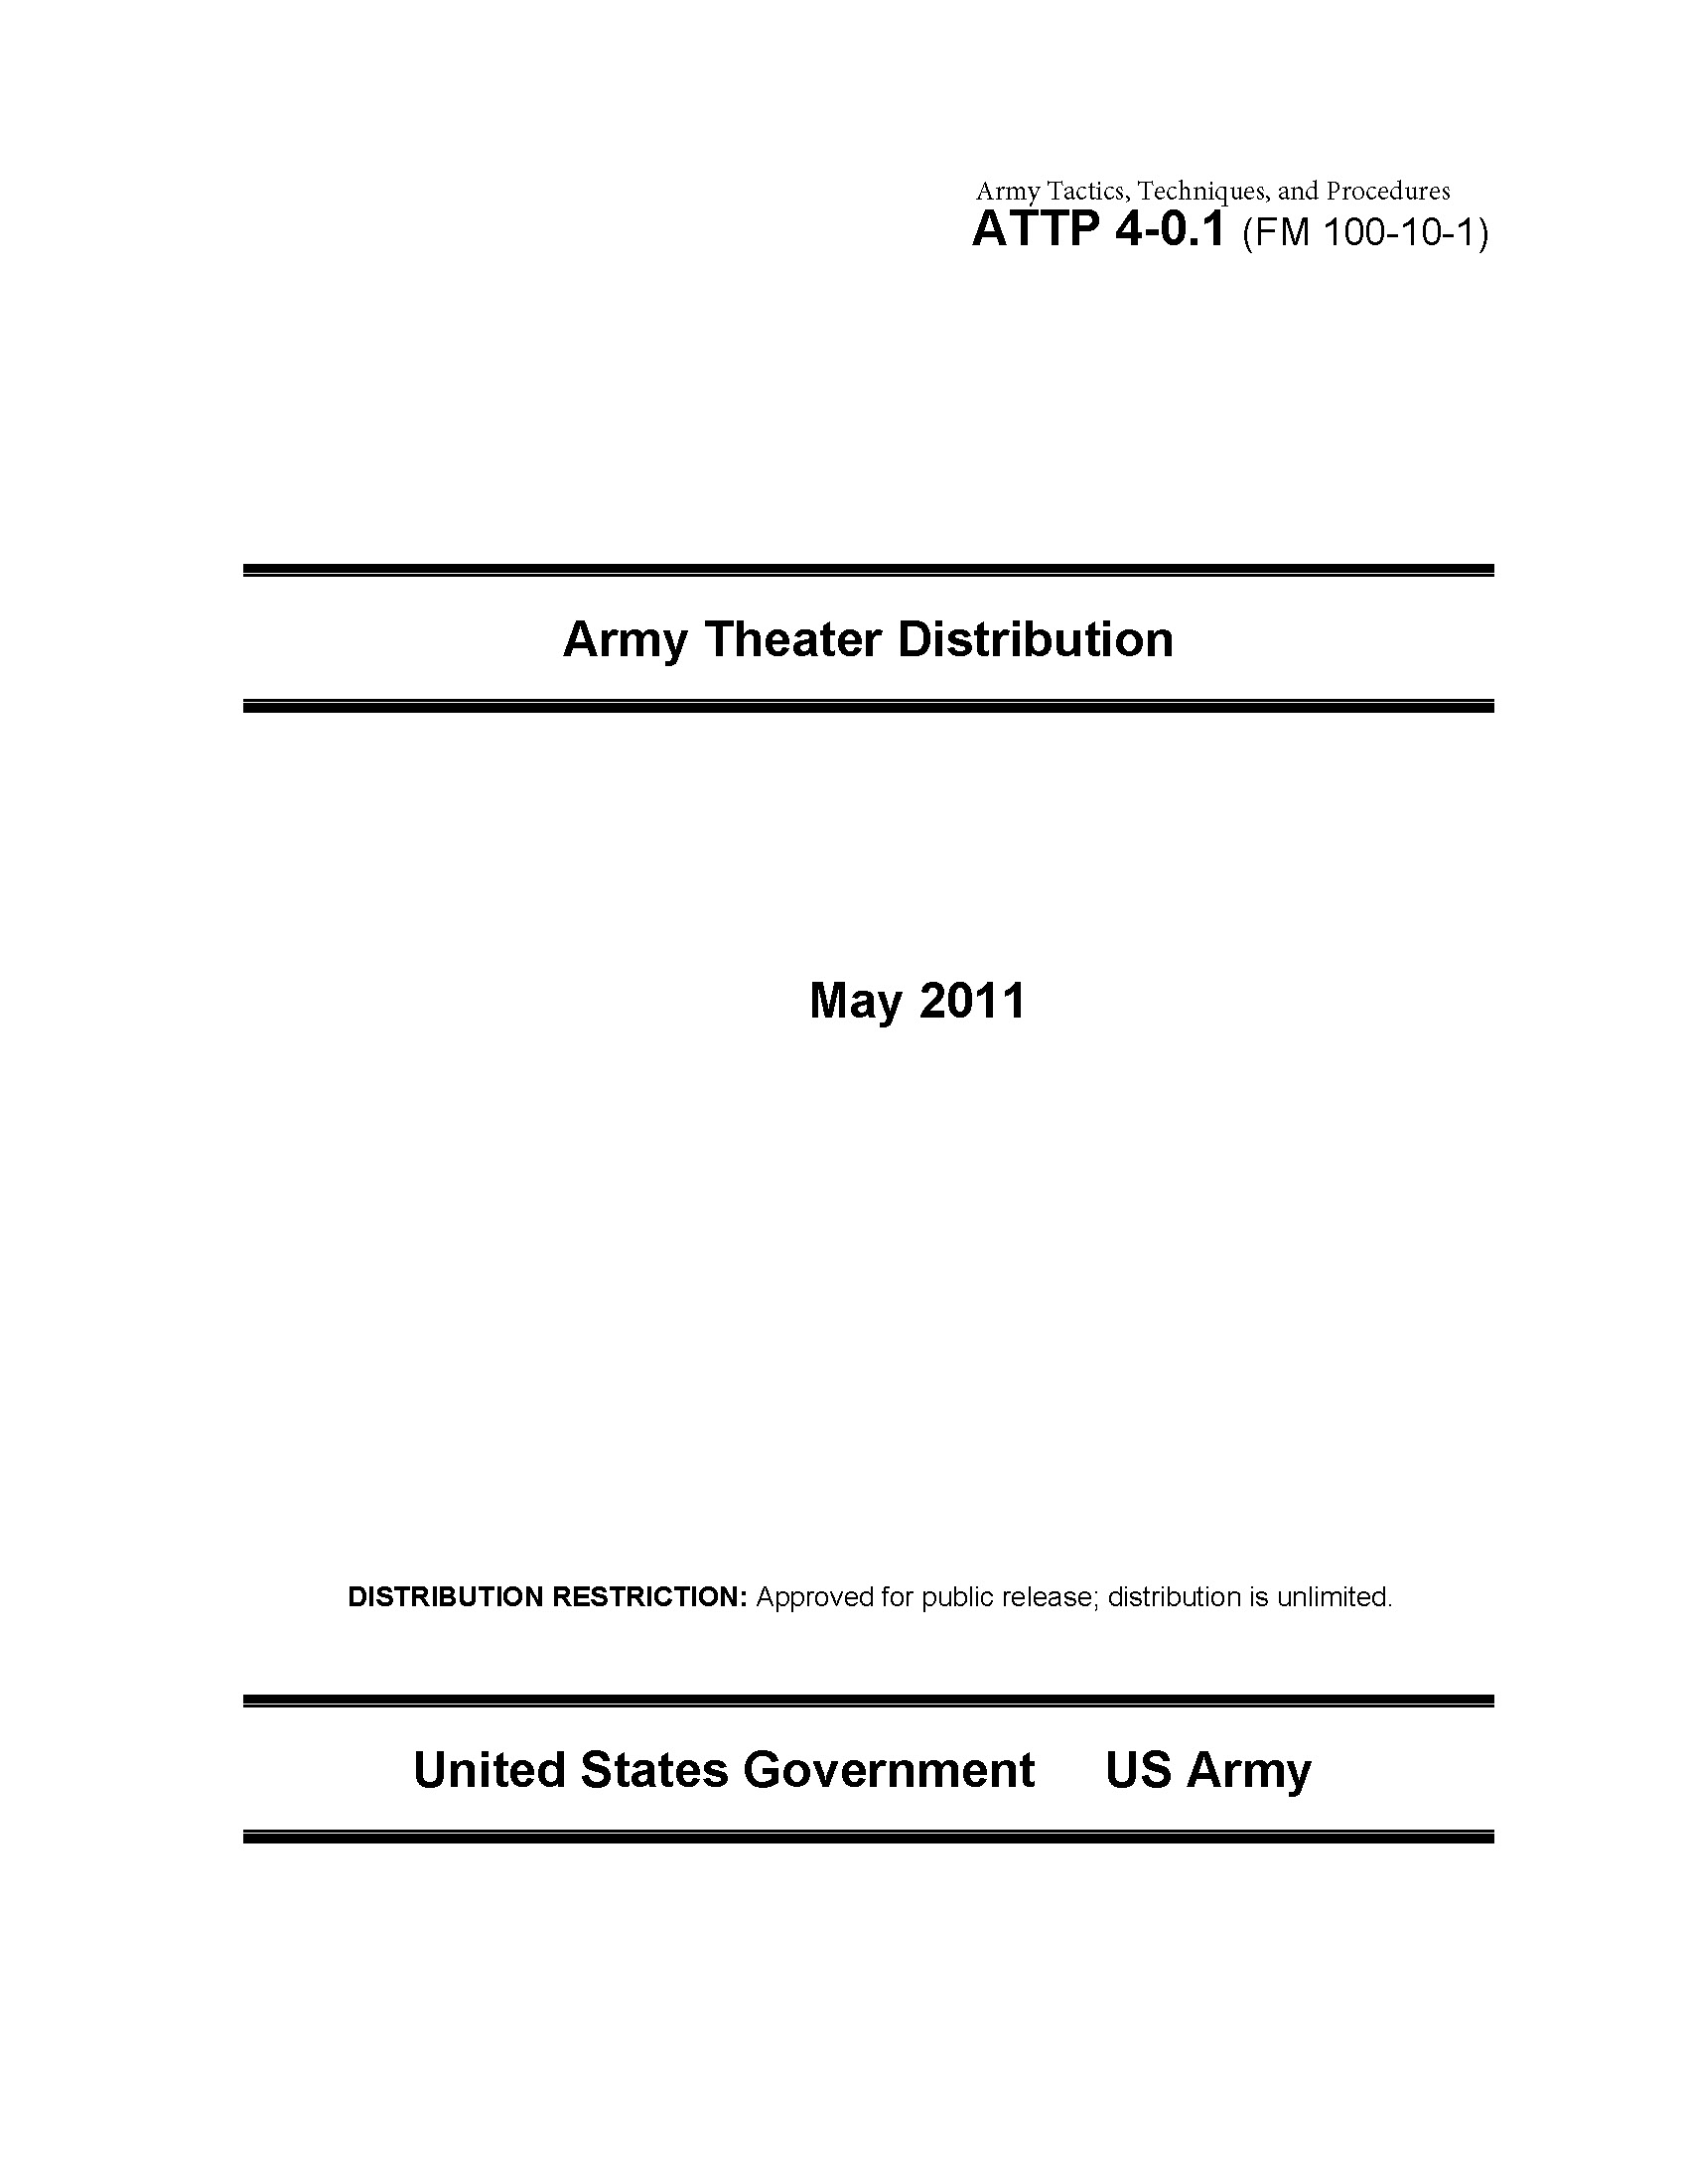 Army Tactics, Techniques, and Procedures ATTP 4-0.1 (FM 100-10-1) Army Theater Distribution